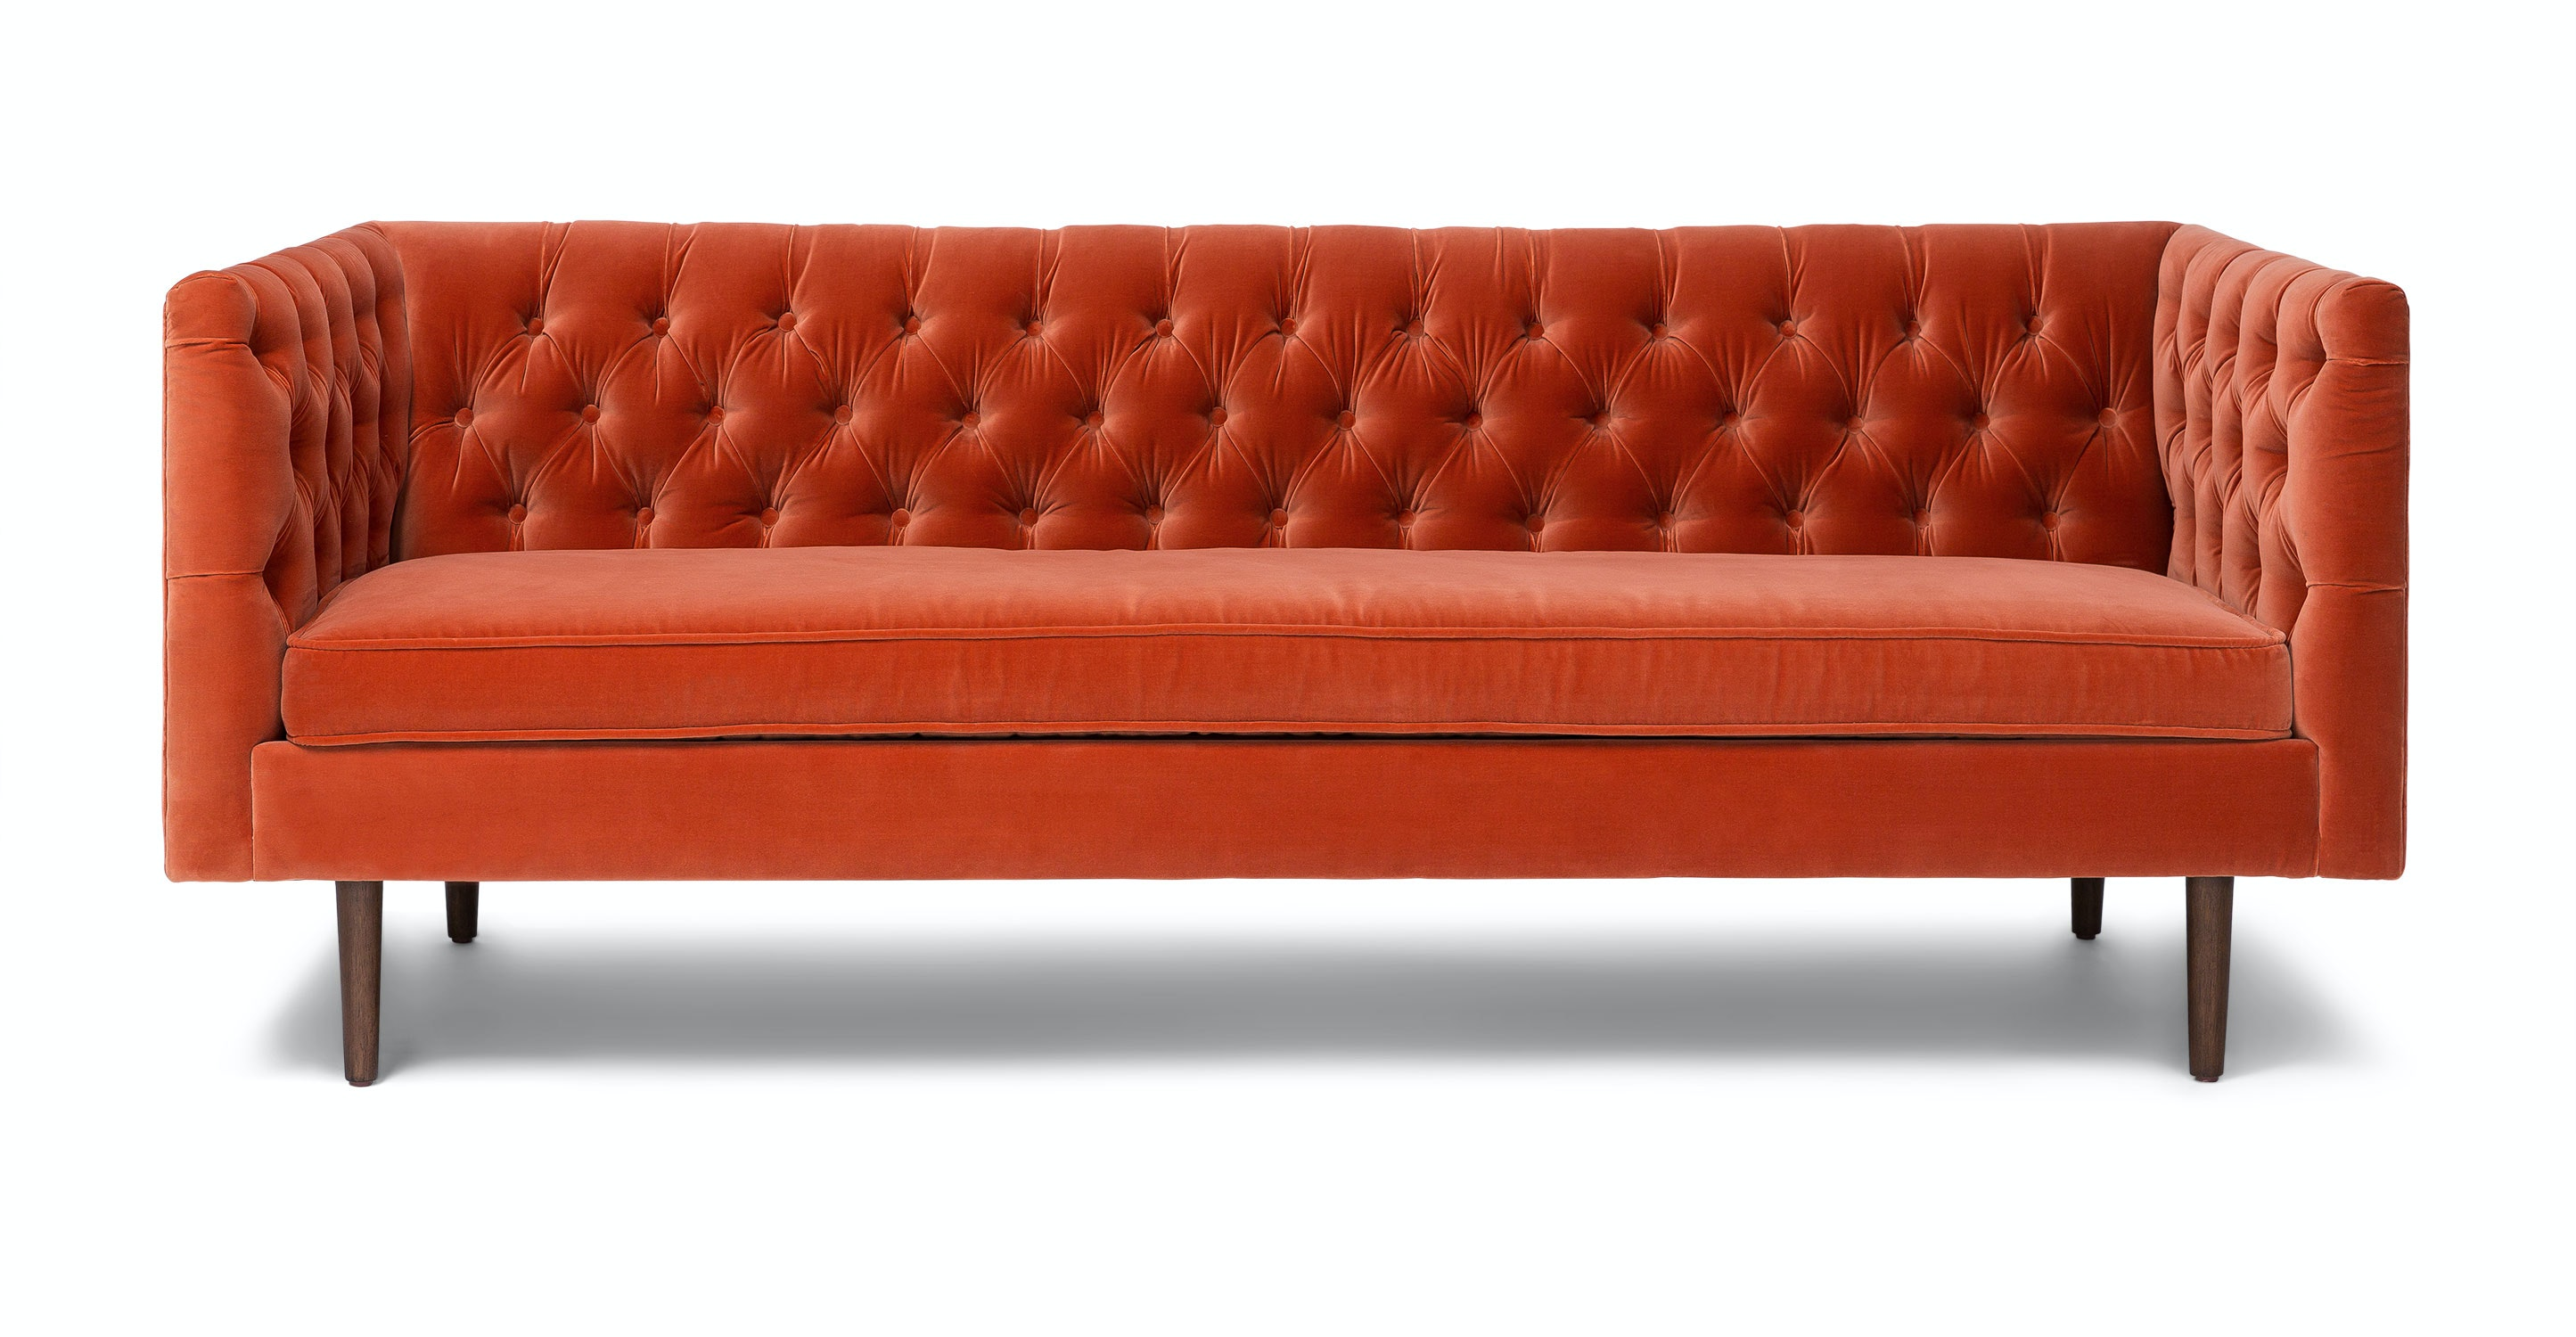 Sofa Orange Friheten Sleeper Sofa Skiftebo Dark Orange